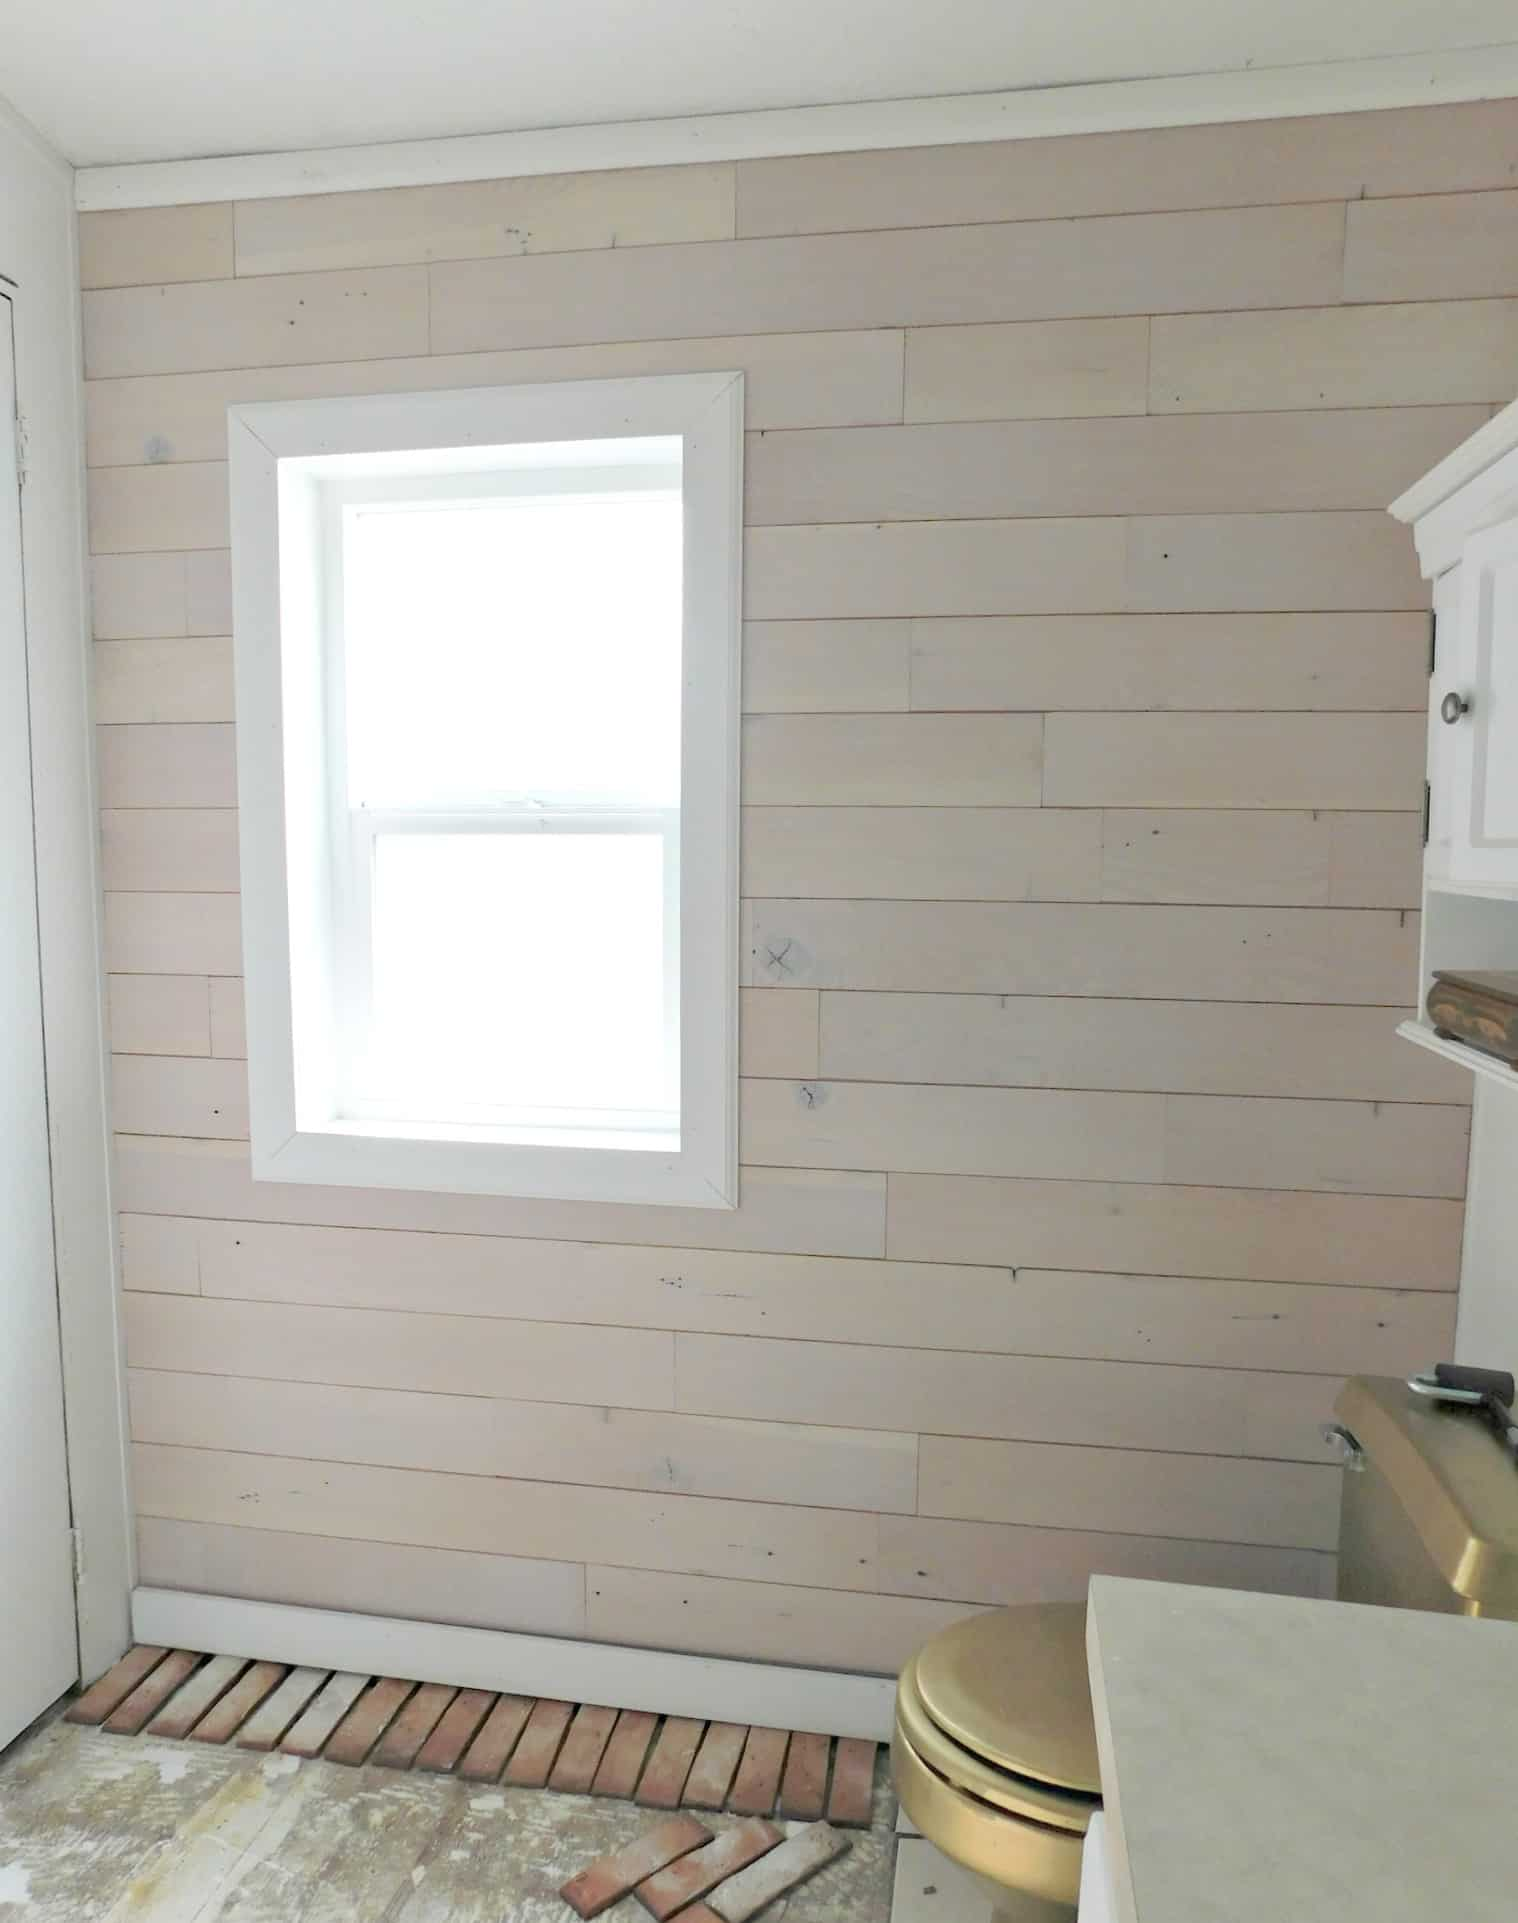 How To Install A Wood Plank Wall The Easy Way Diy Shiplap